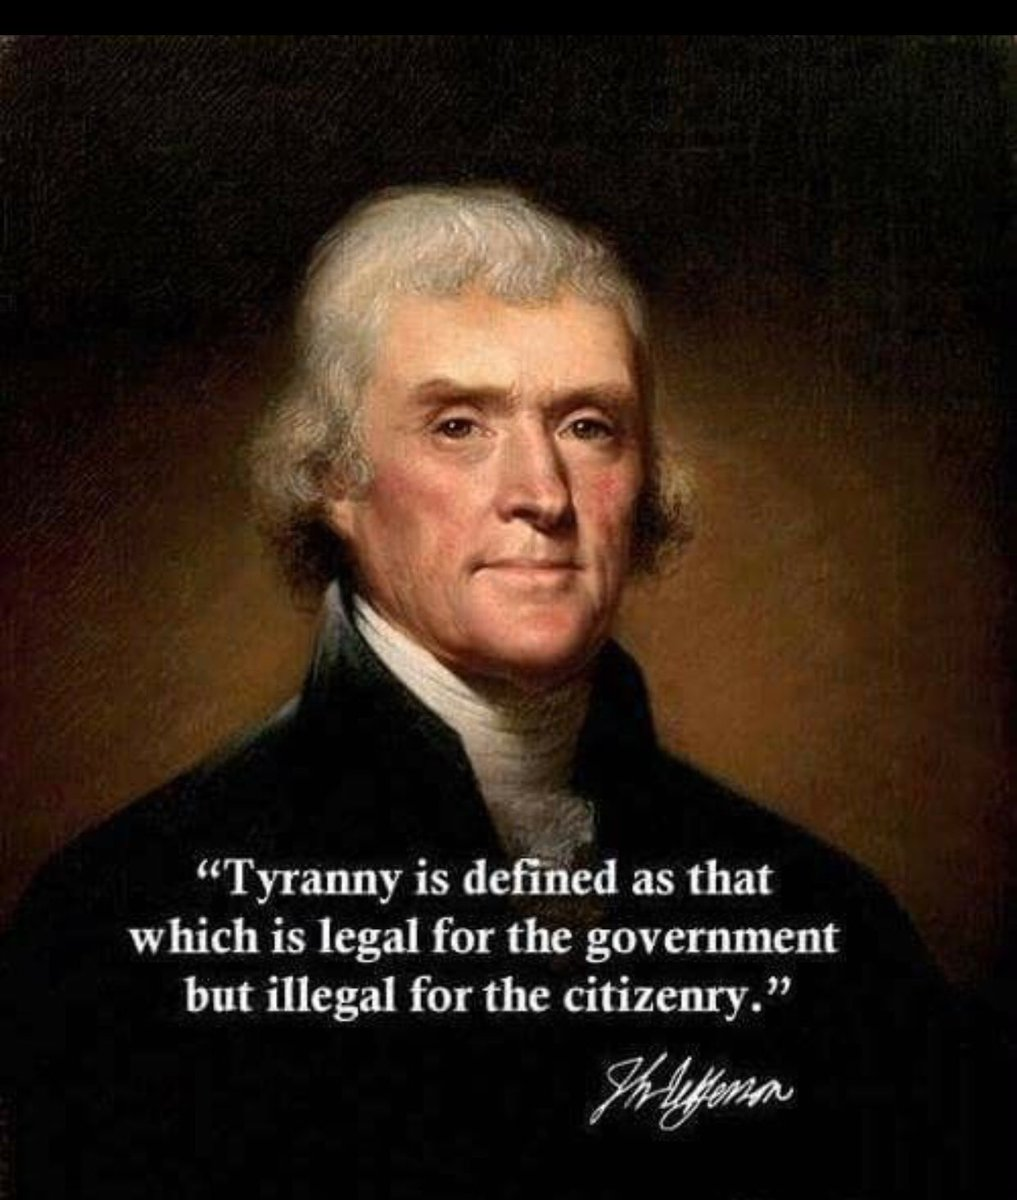 """""""Tyranny is defined as that which is legal for the government but illegal for the citizenry.""""  - Thomas Jefferson   #SeanHannity #FBIScandal  #Mueller #WitchHunt  @seanhannity  @realDonaldTrump<br>http://pic.twitter.com/Tgx9Ow1UNY"""